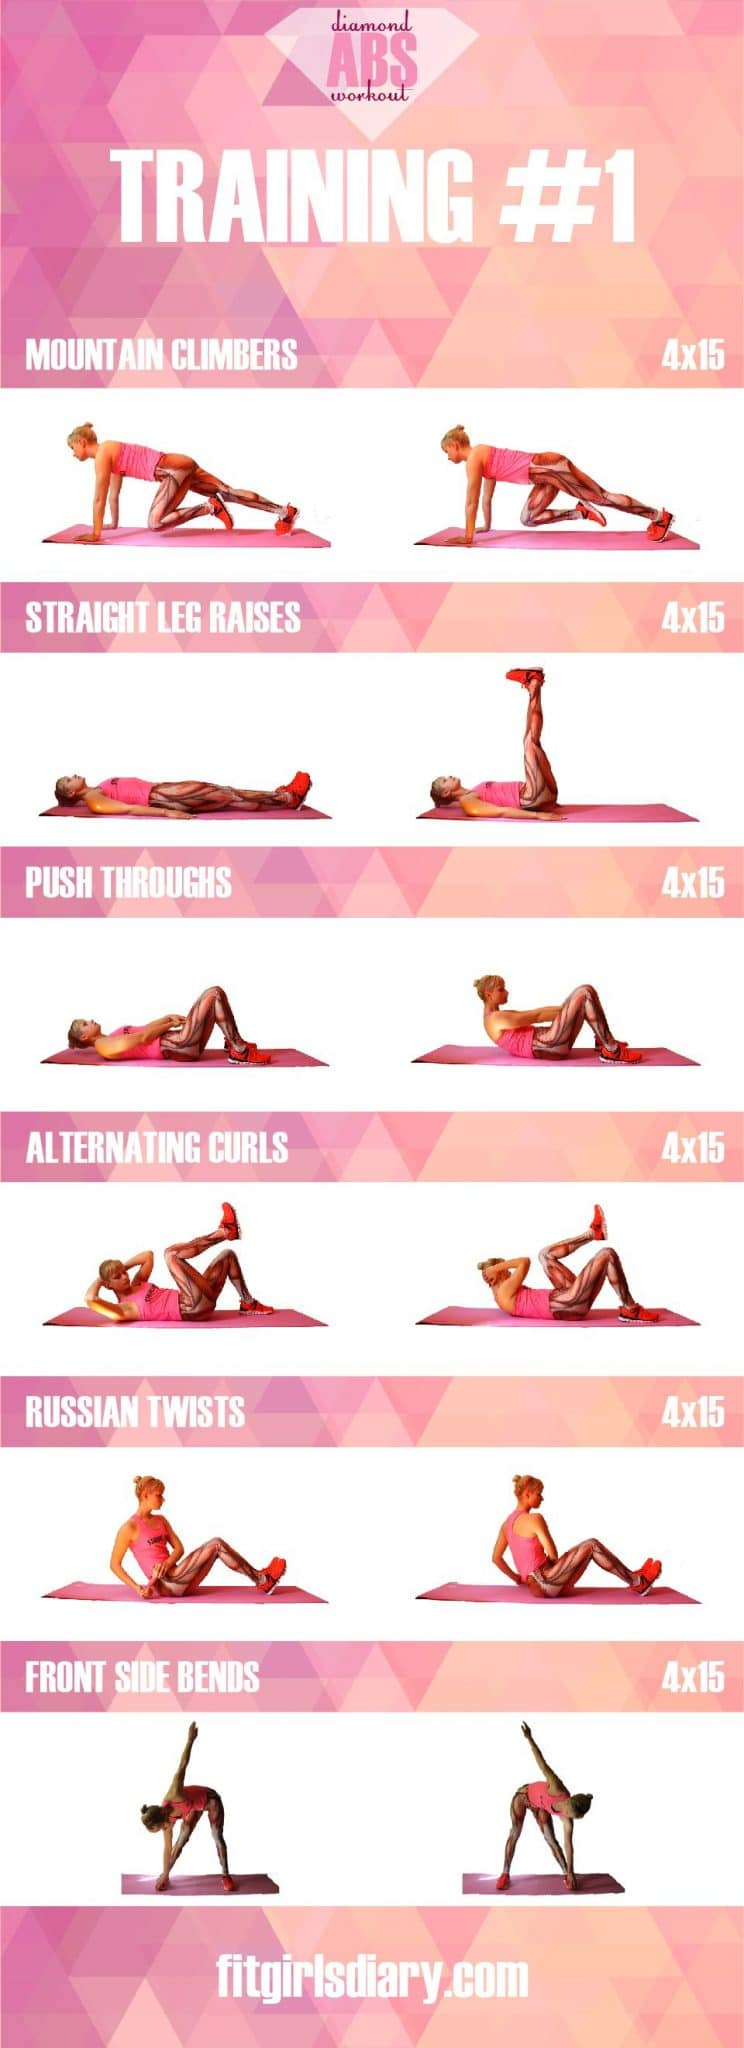 training #1 Diamond Abs Workout - The Best Ab Exercises for Women